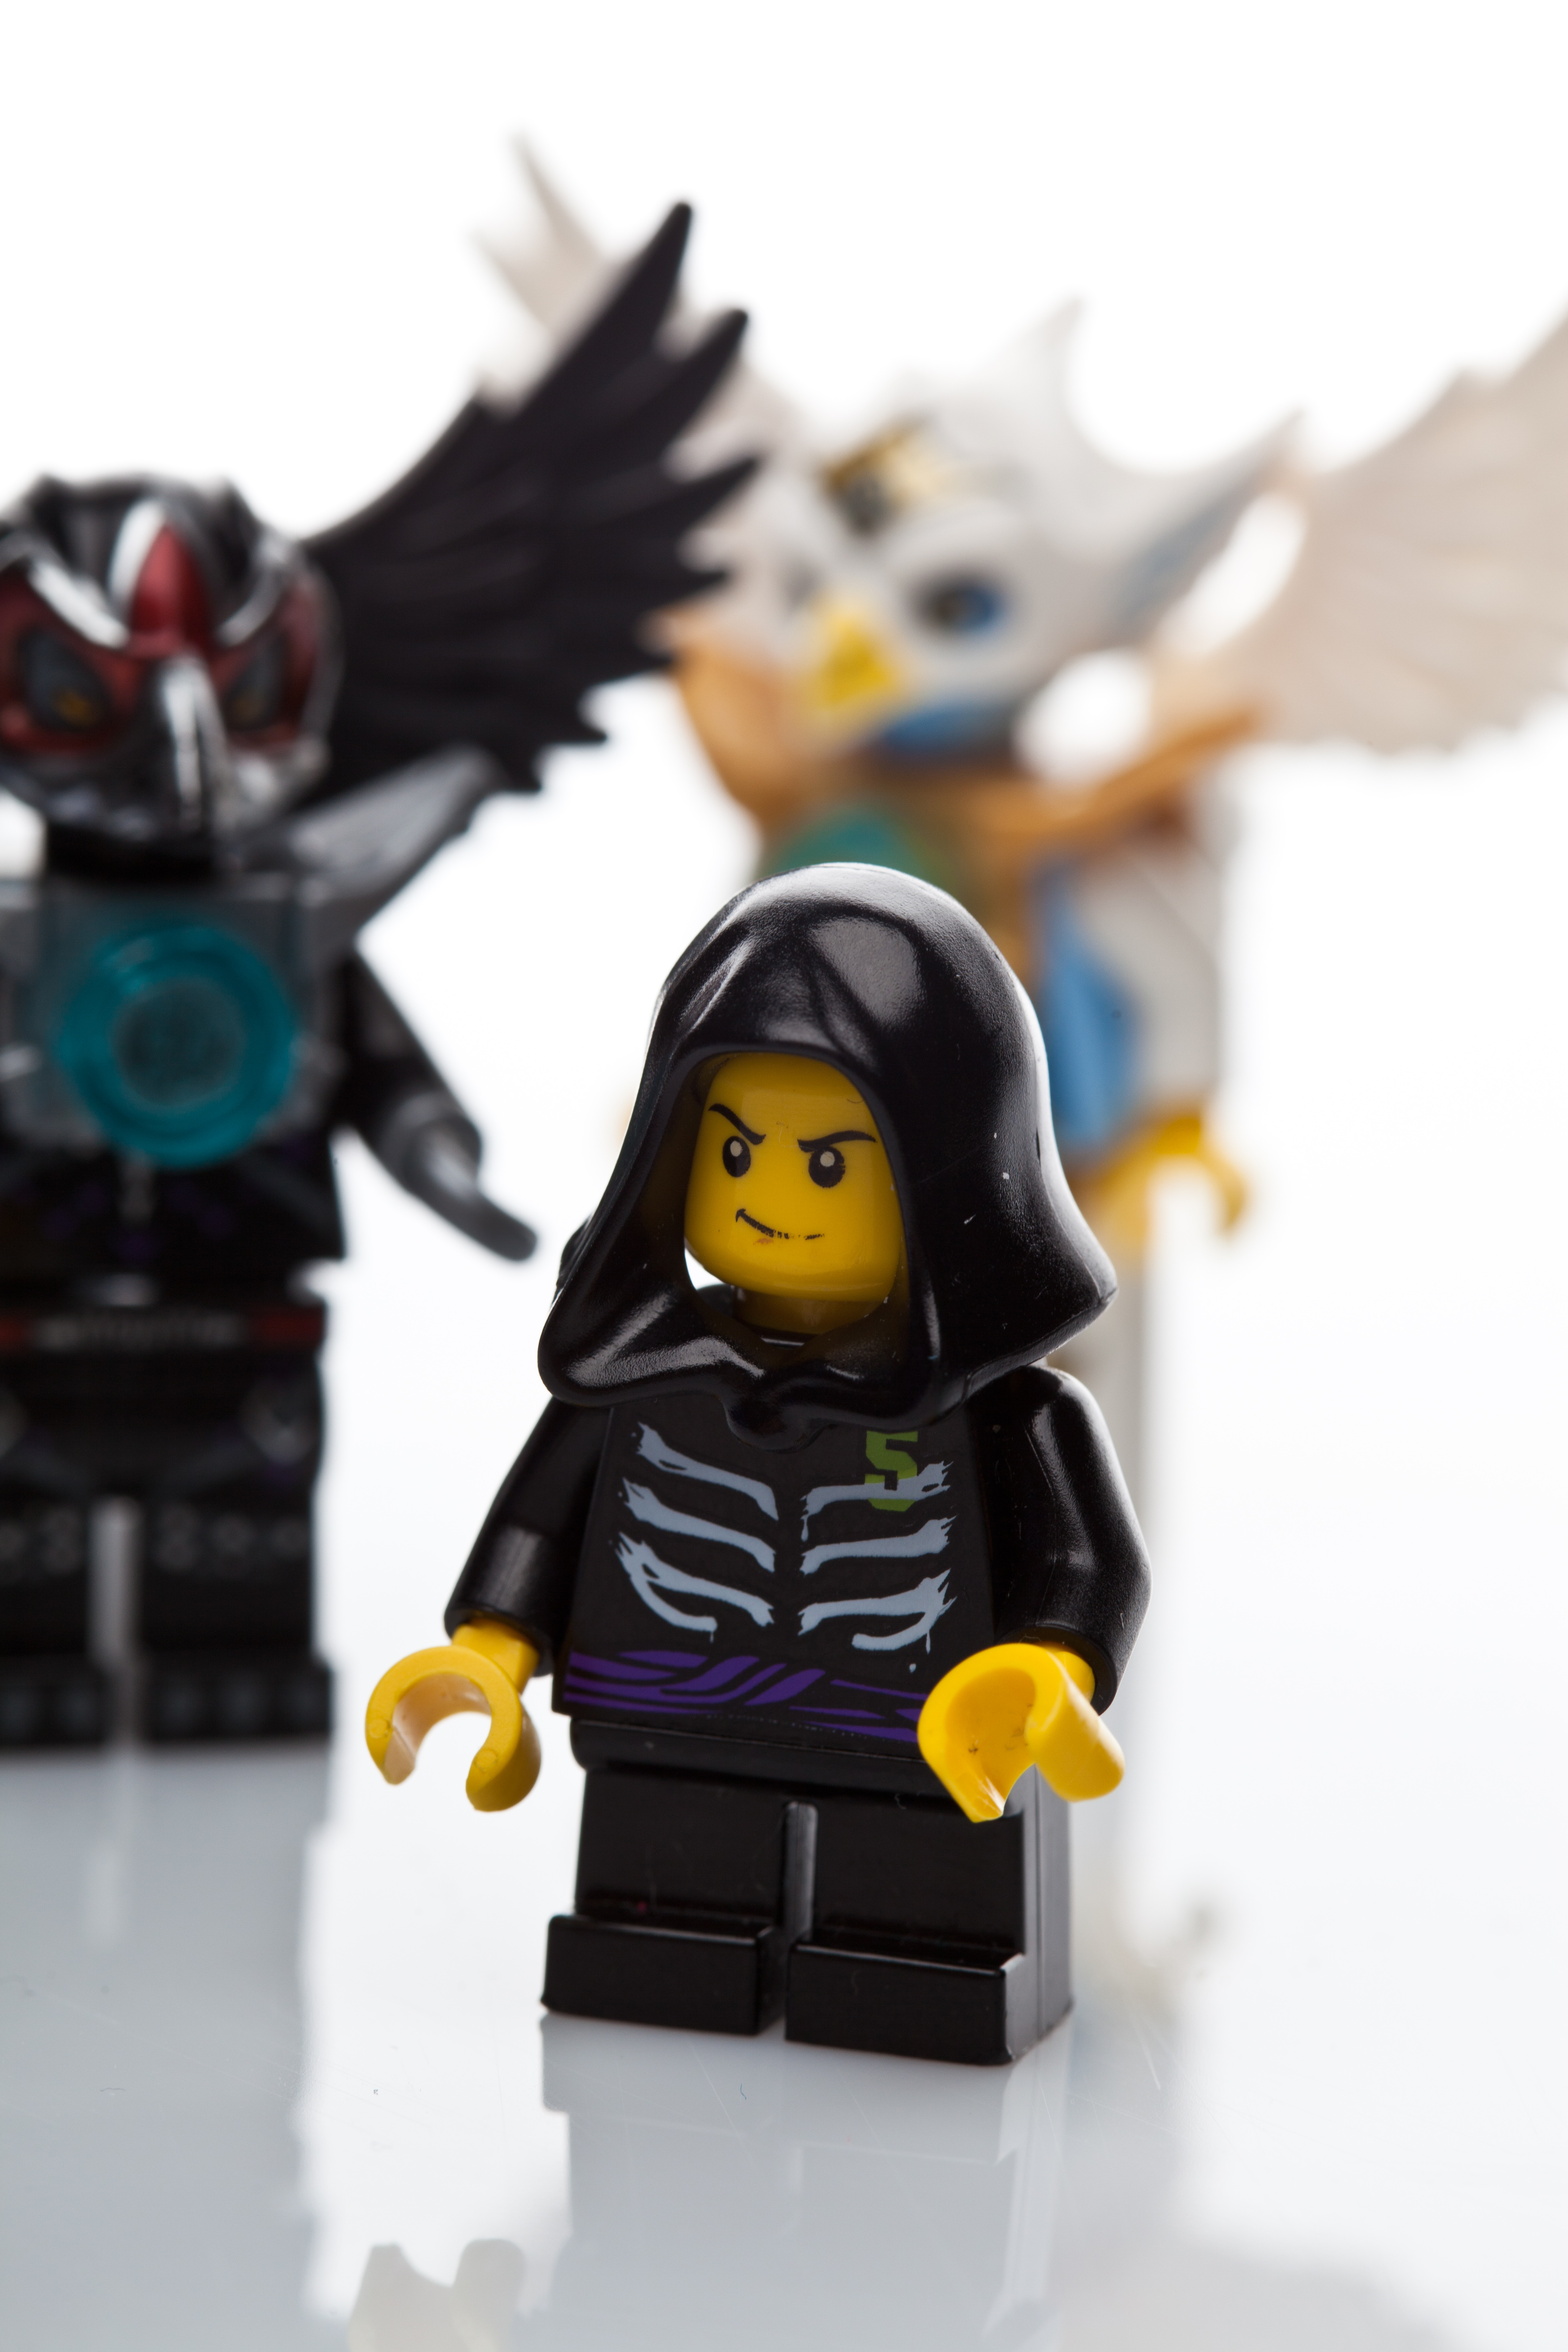 Lego Characters, Character, Lego, Toy, HQ Photo